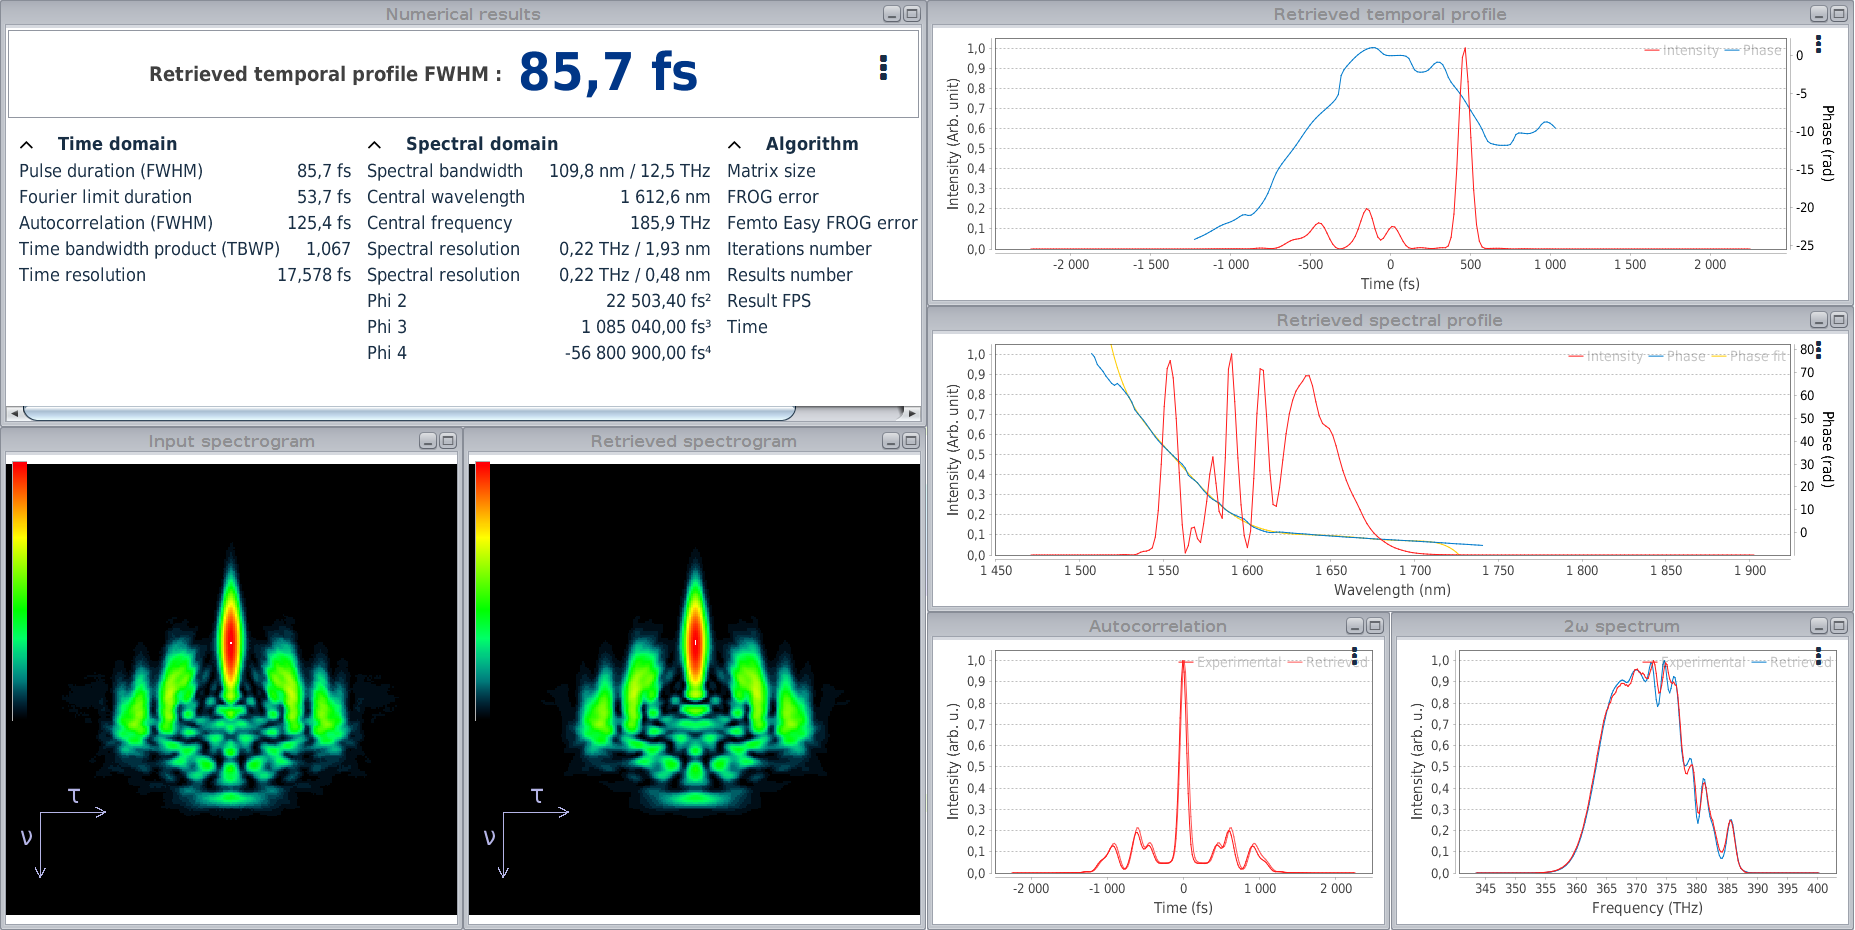 MS-FROG Frequency Software from Femto Easy